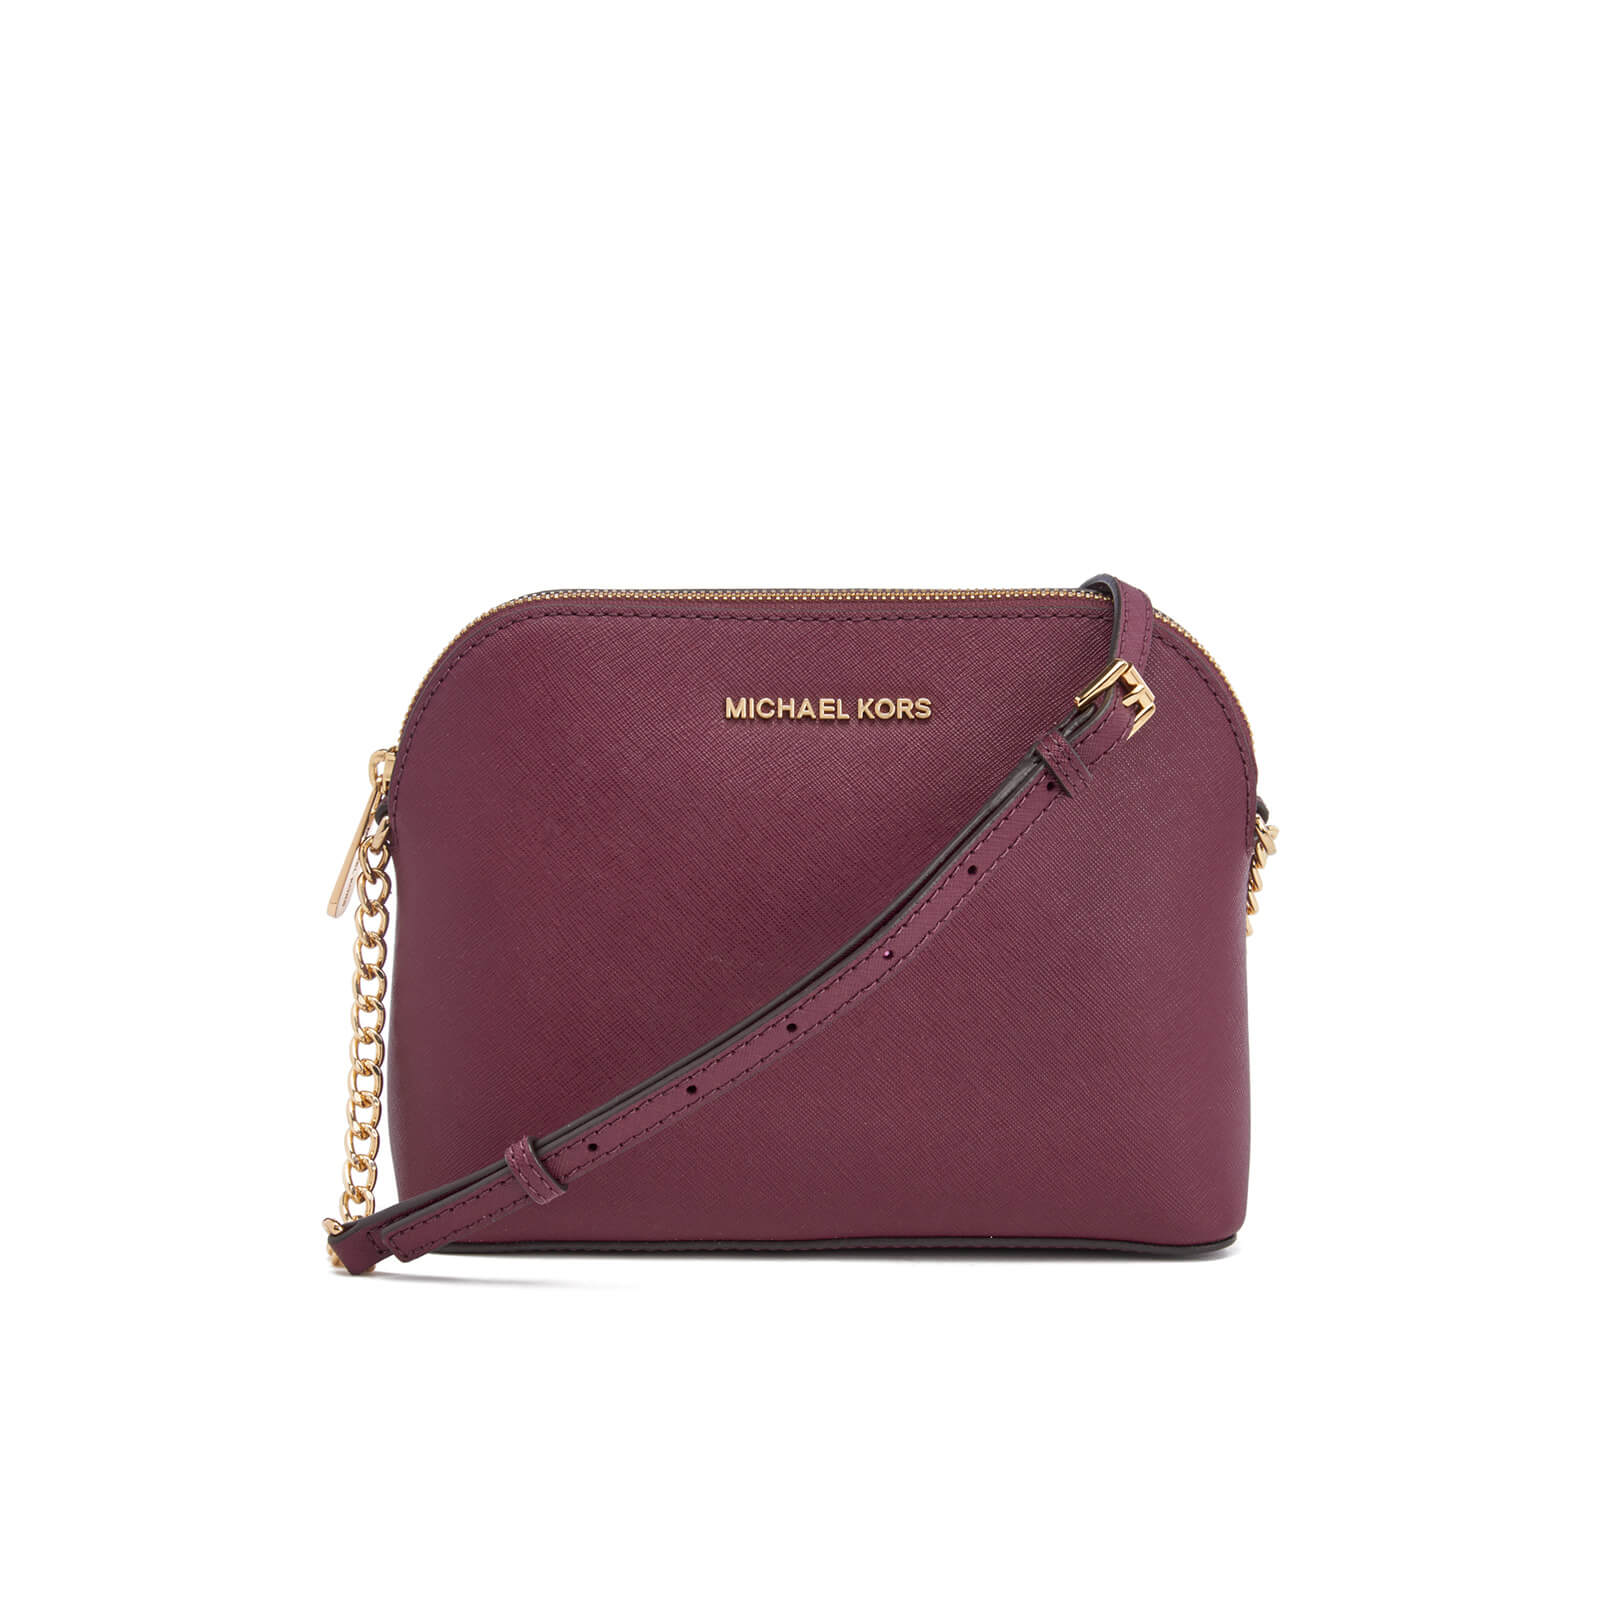 cdabfbb2fbac MICHAEL MICHAEL KORS Women's Cindy Large Dome Cross Body Bag - Plum - Free  UK Delivery over £50